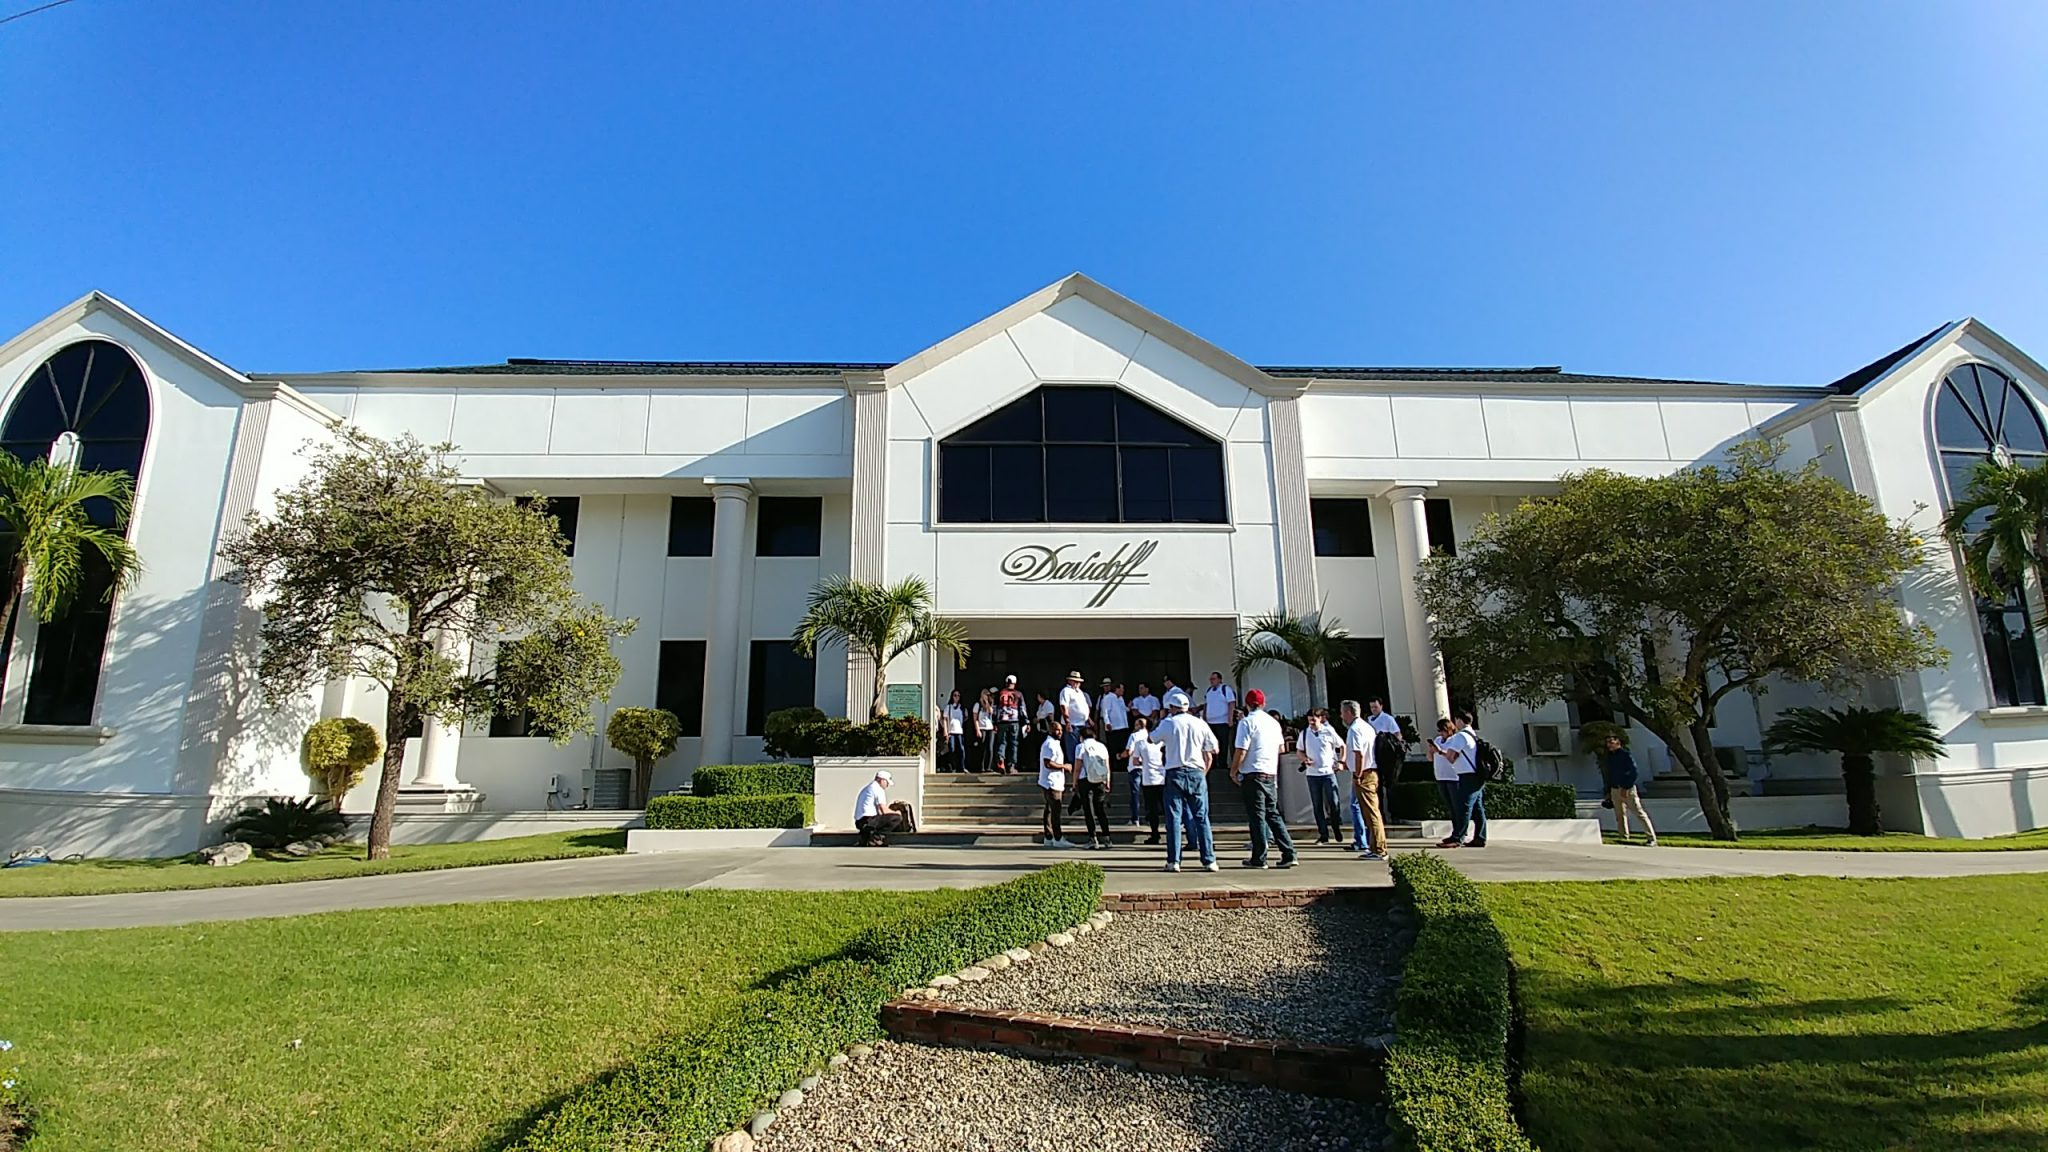 davidoff cigar factory